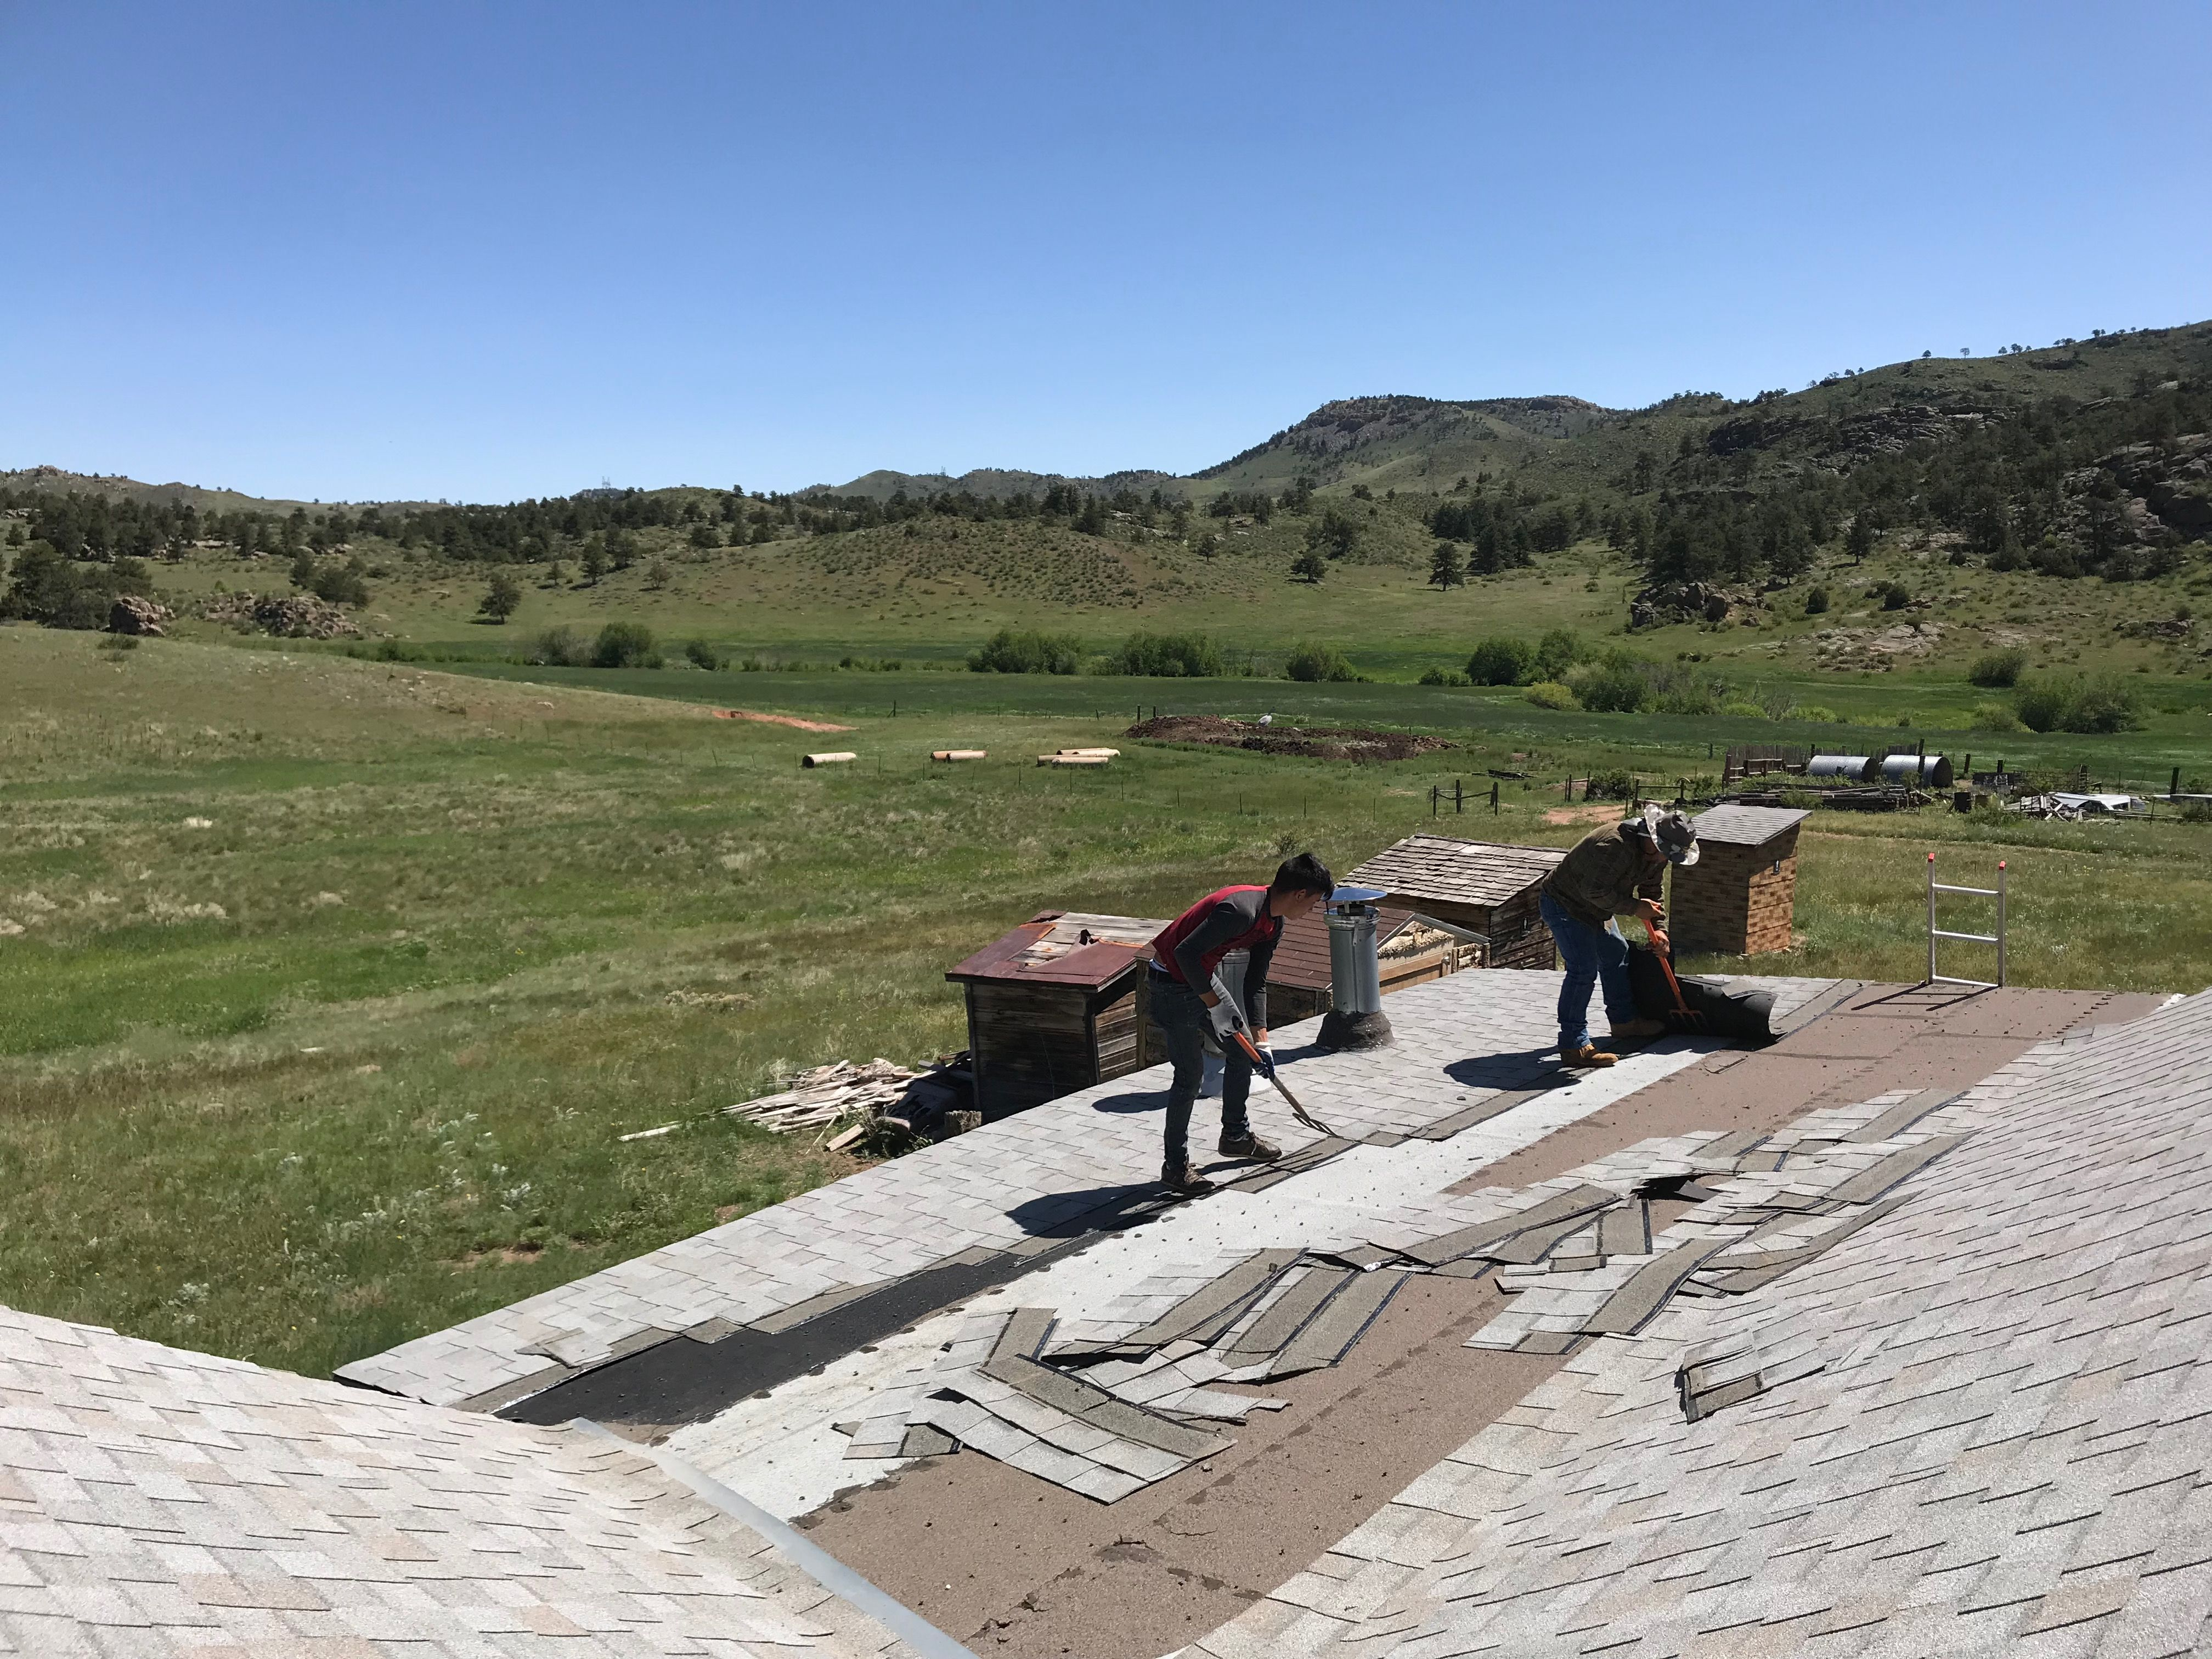 The Crew Is Tearing Off The Flat Roof Portion Of The Roof On The Hurzeler House We Re Roofed The Flat Portion With A Flat Roof Roofing Contractors Shingling